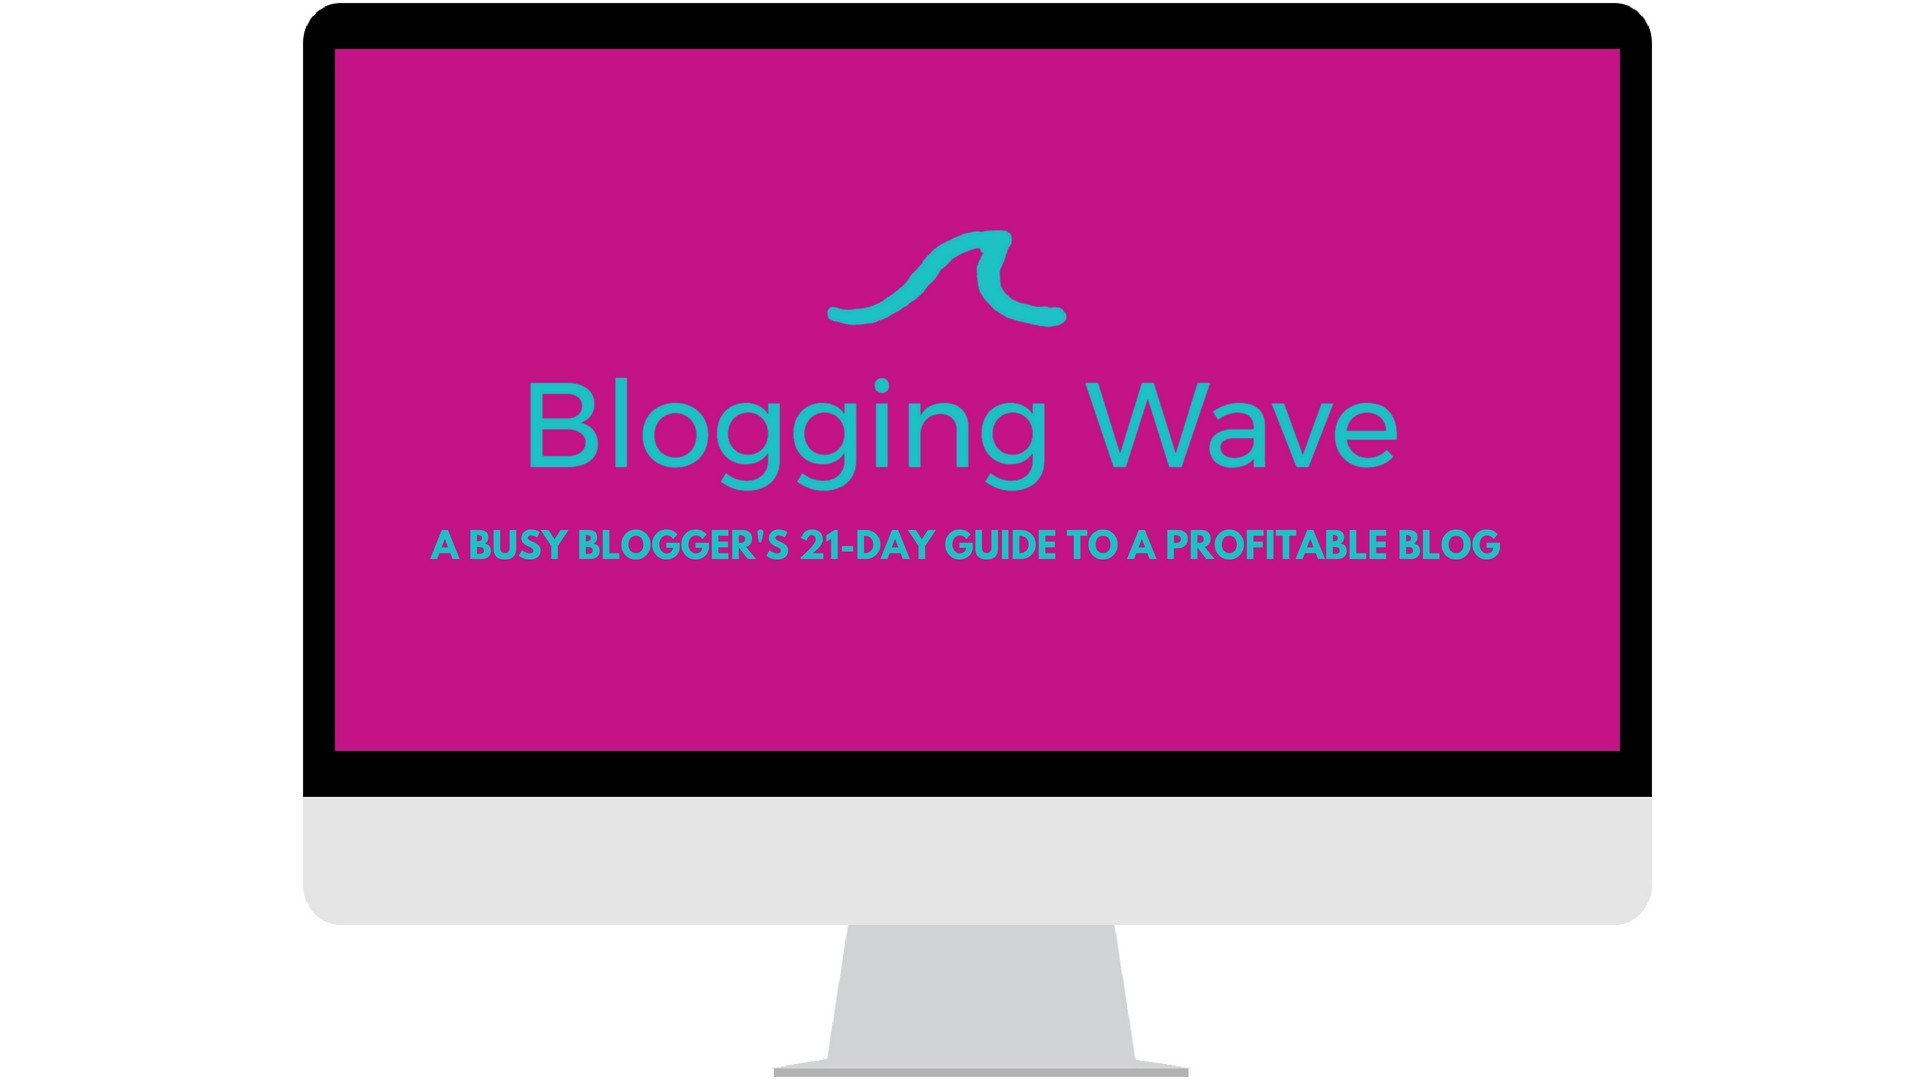 Blogging Wave. A busy blogger's 21-day guide to a profitable blog